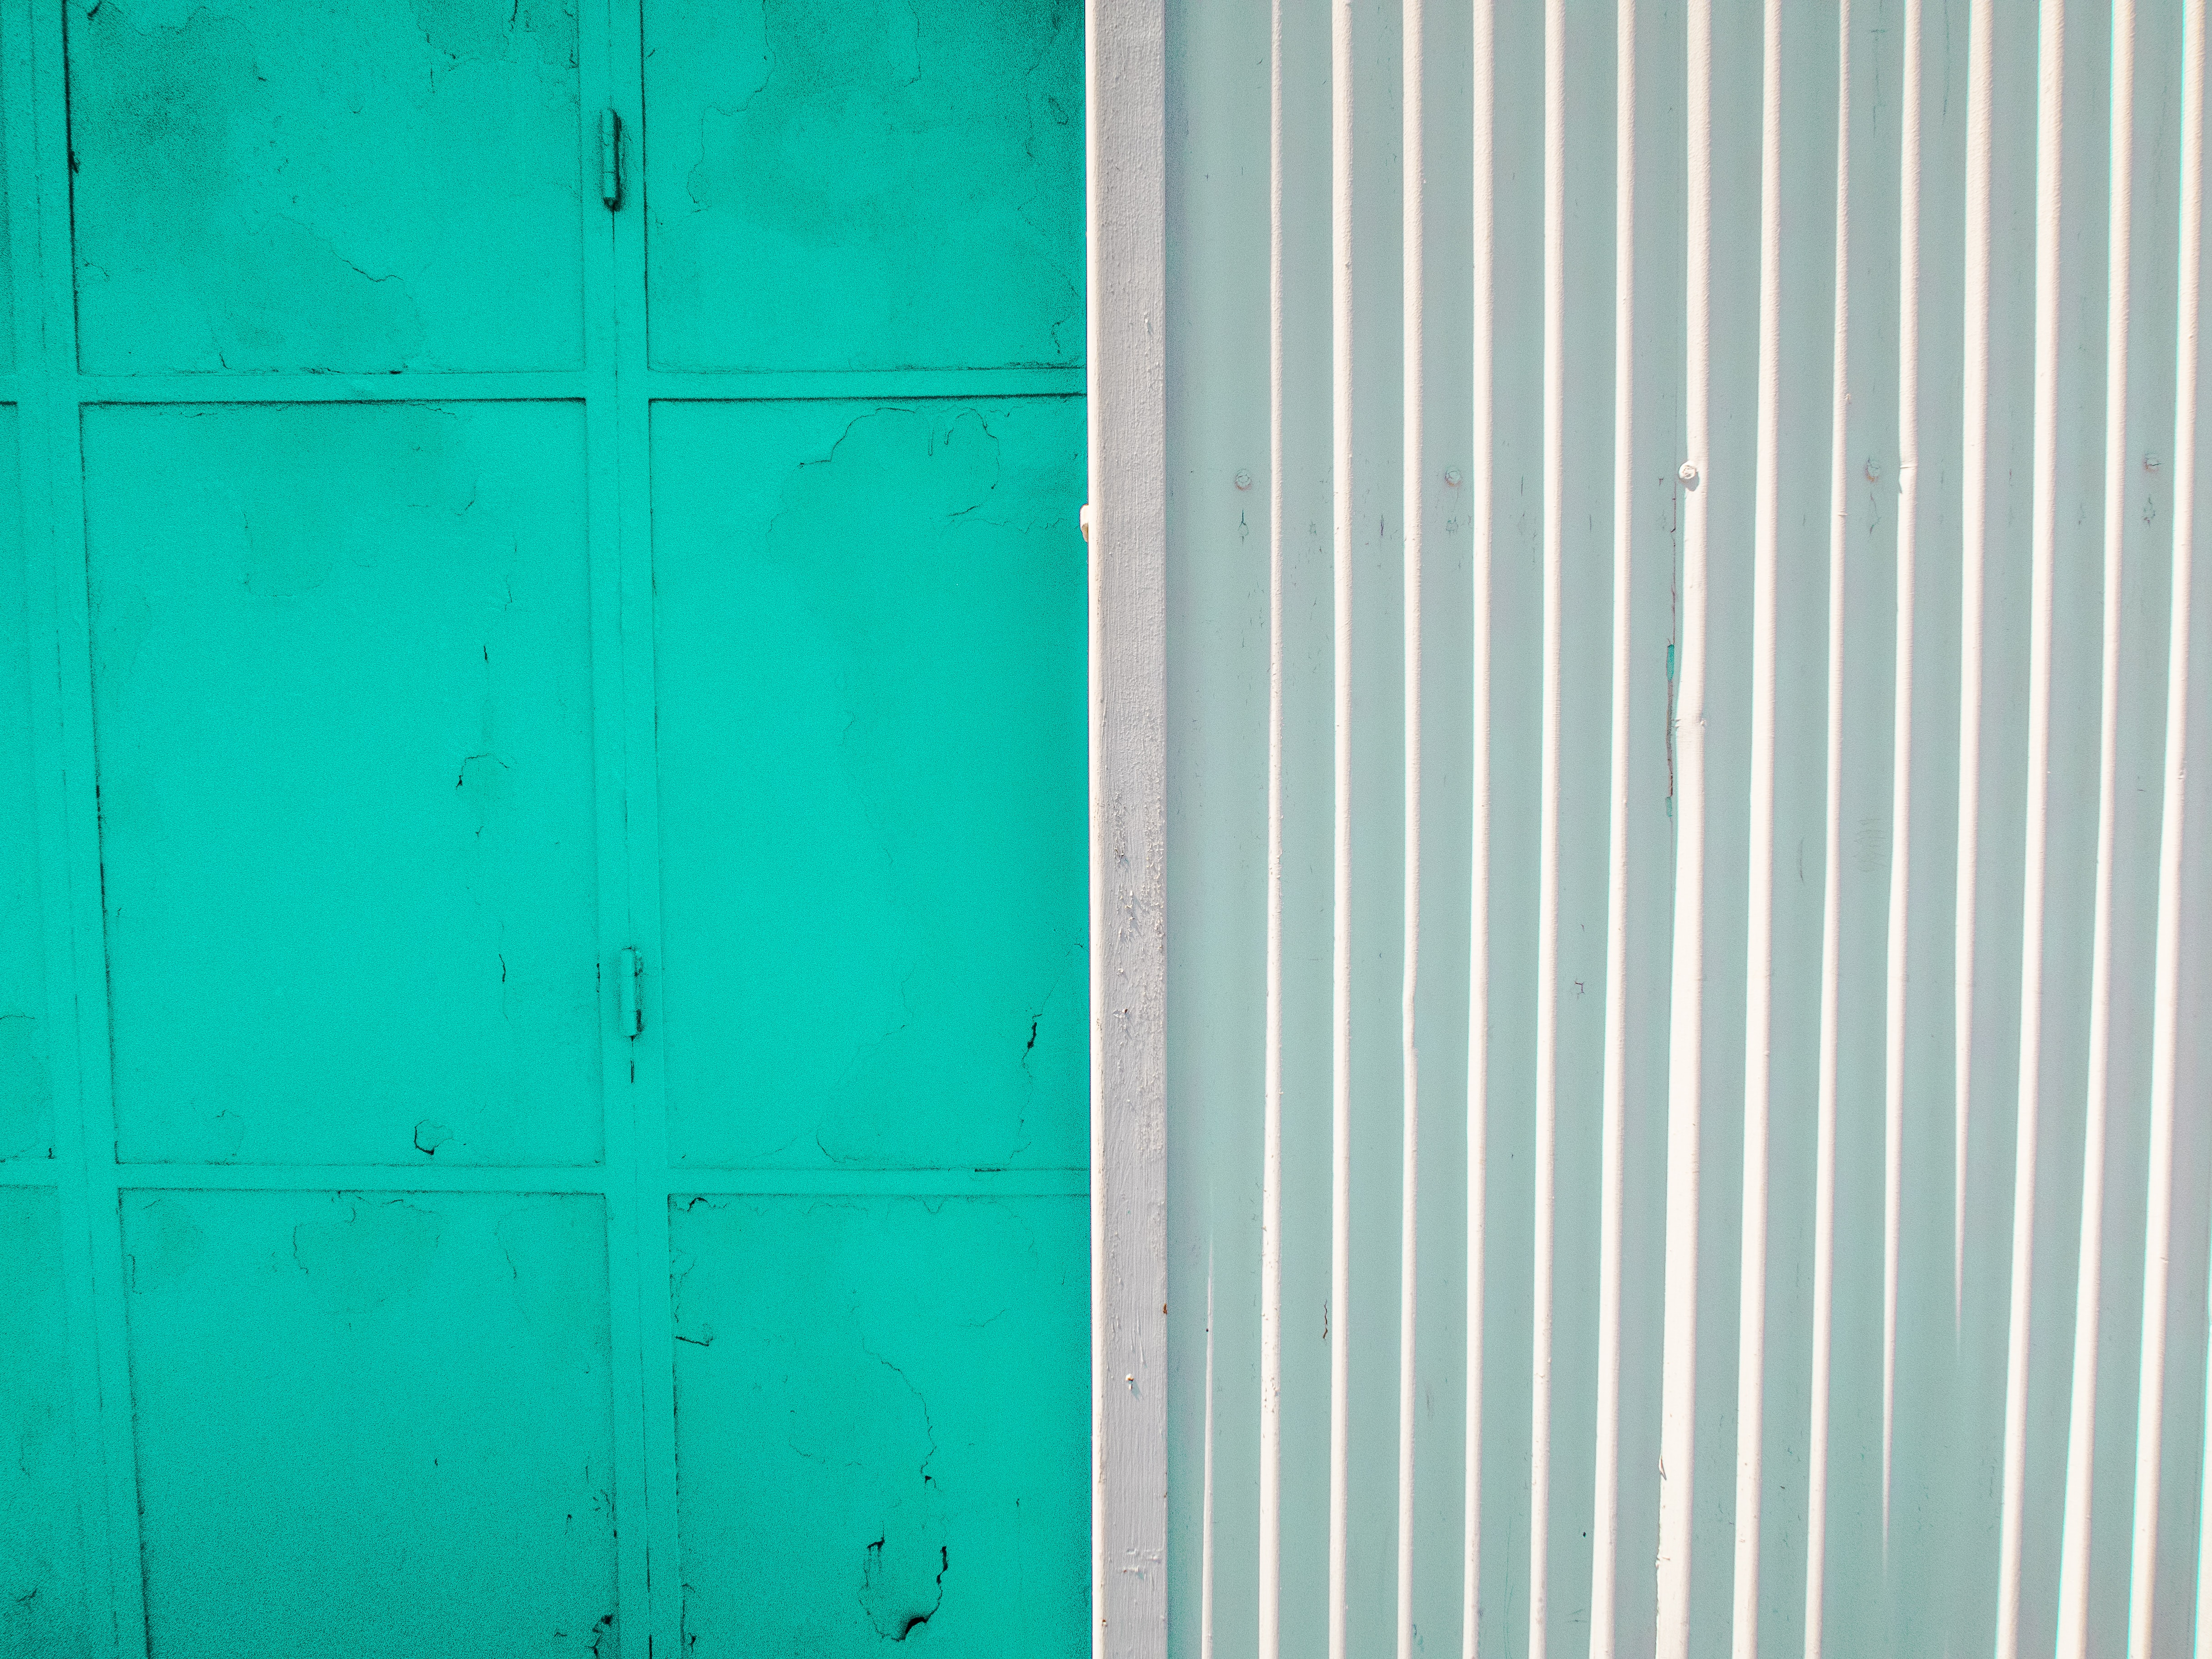 teal painted wall